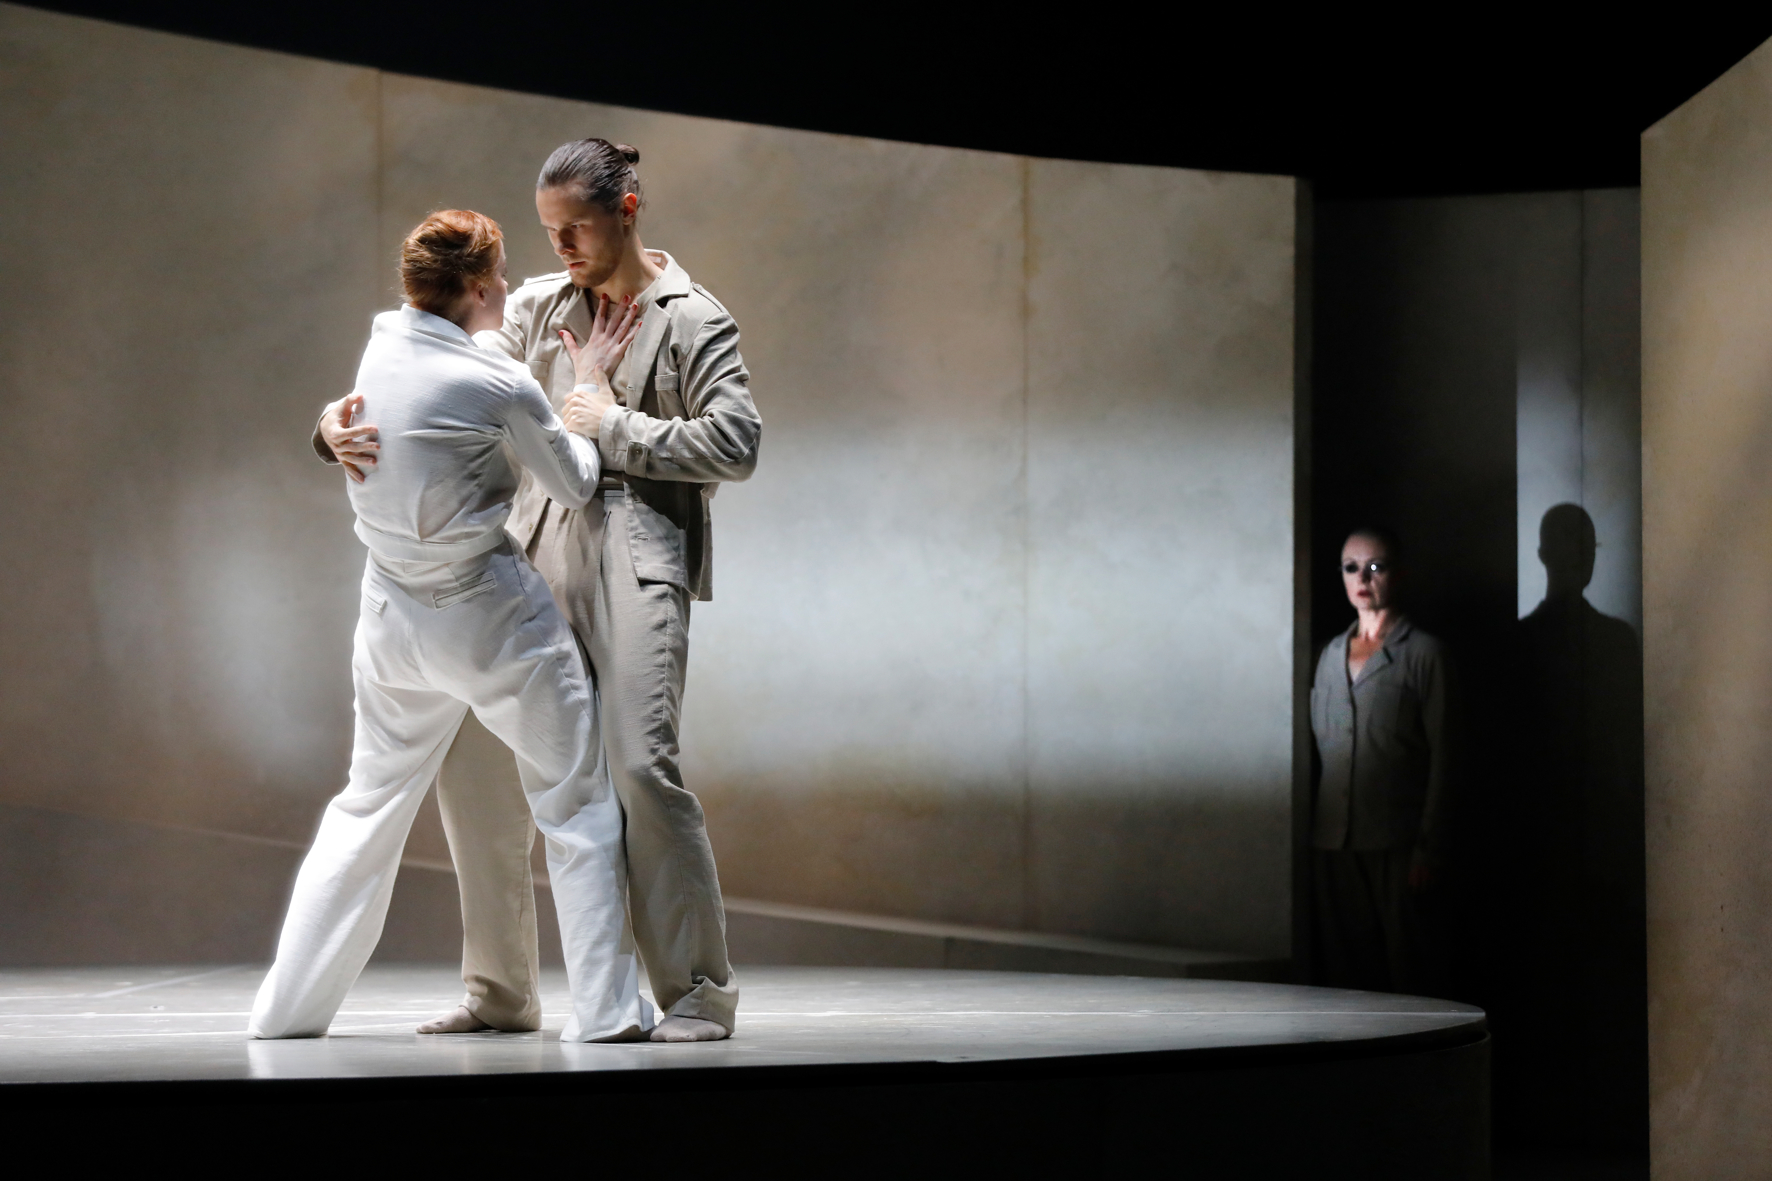 Two dansers in duet on the stage. We see the back of a female, who has her hand against the chest of her partner. He has his hand around her wrist and the other arm on her back. A mysterious figure is watching in the background.